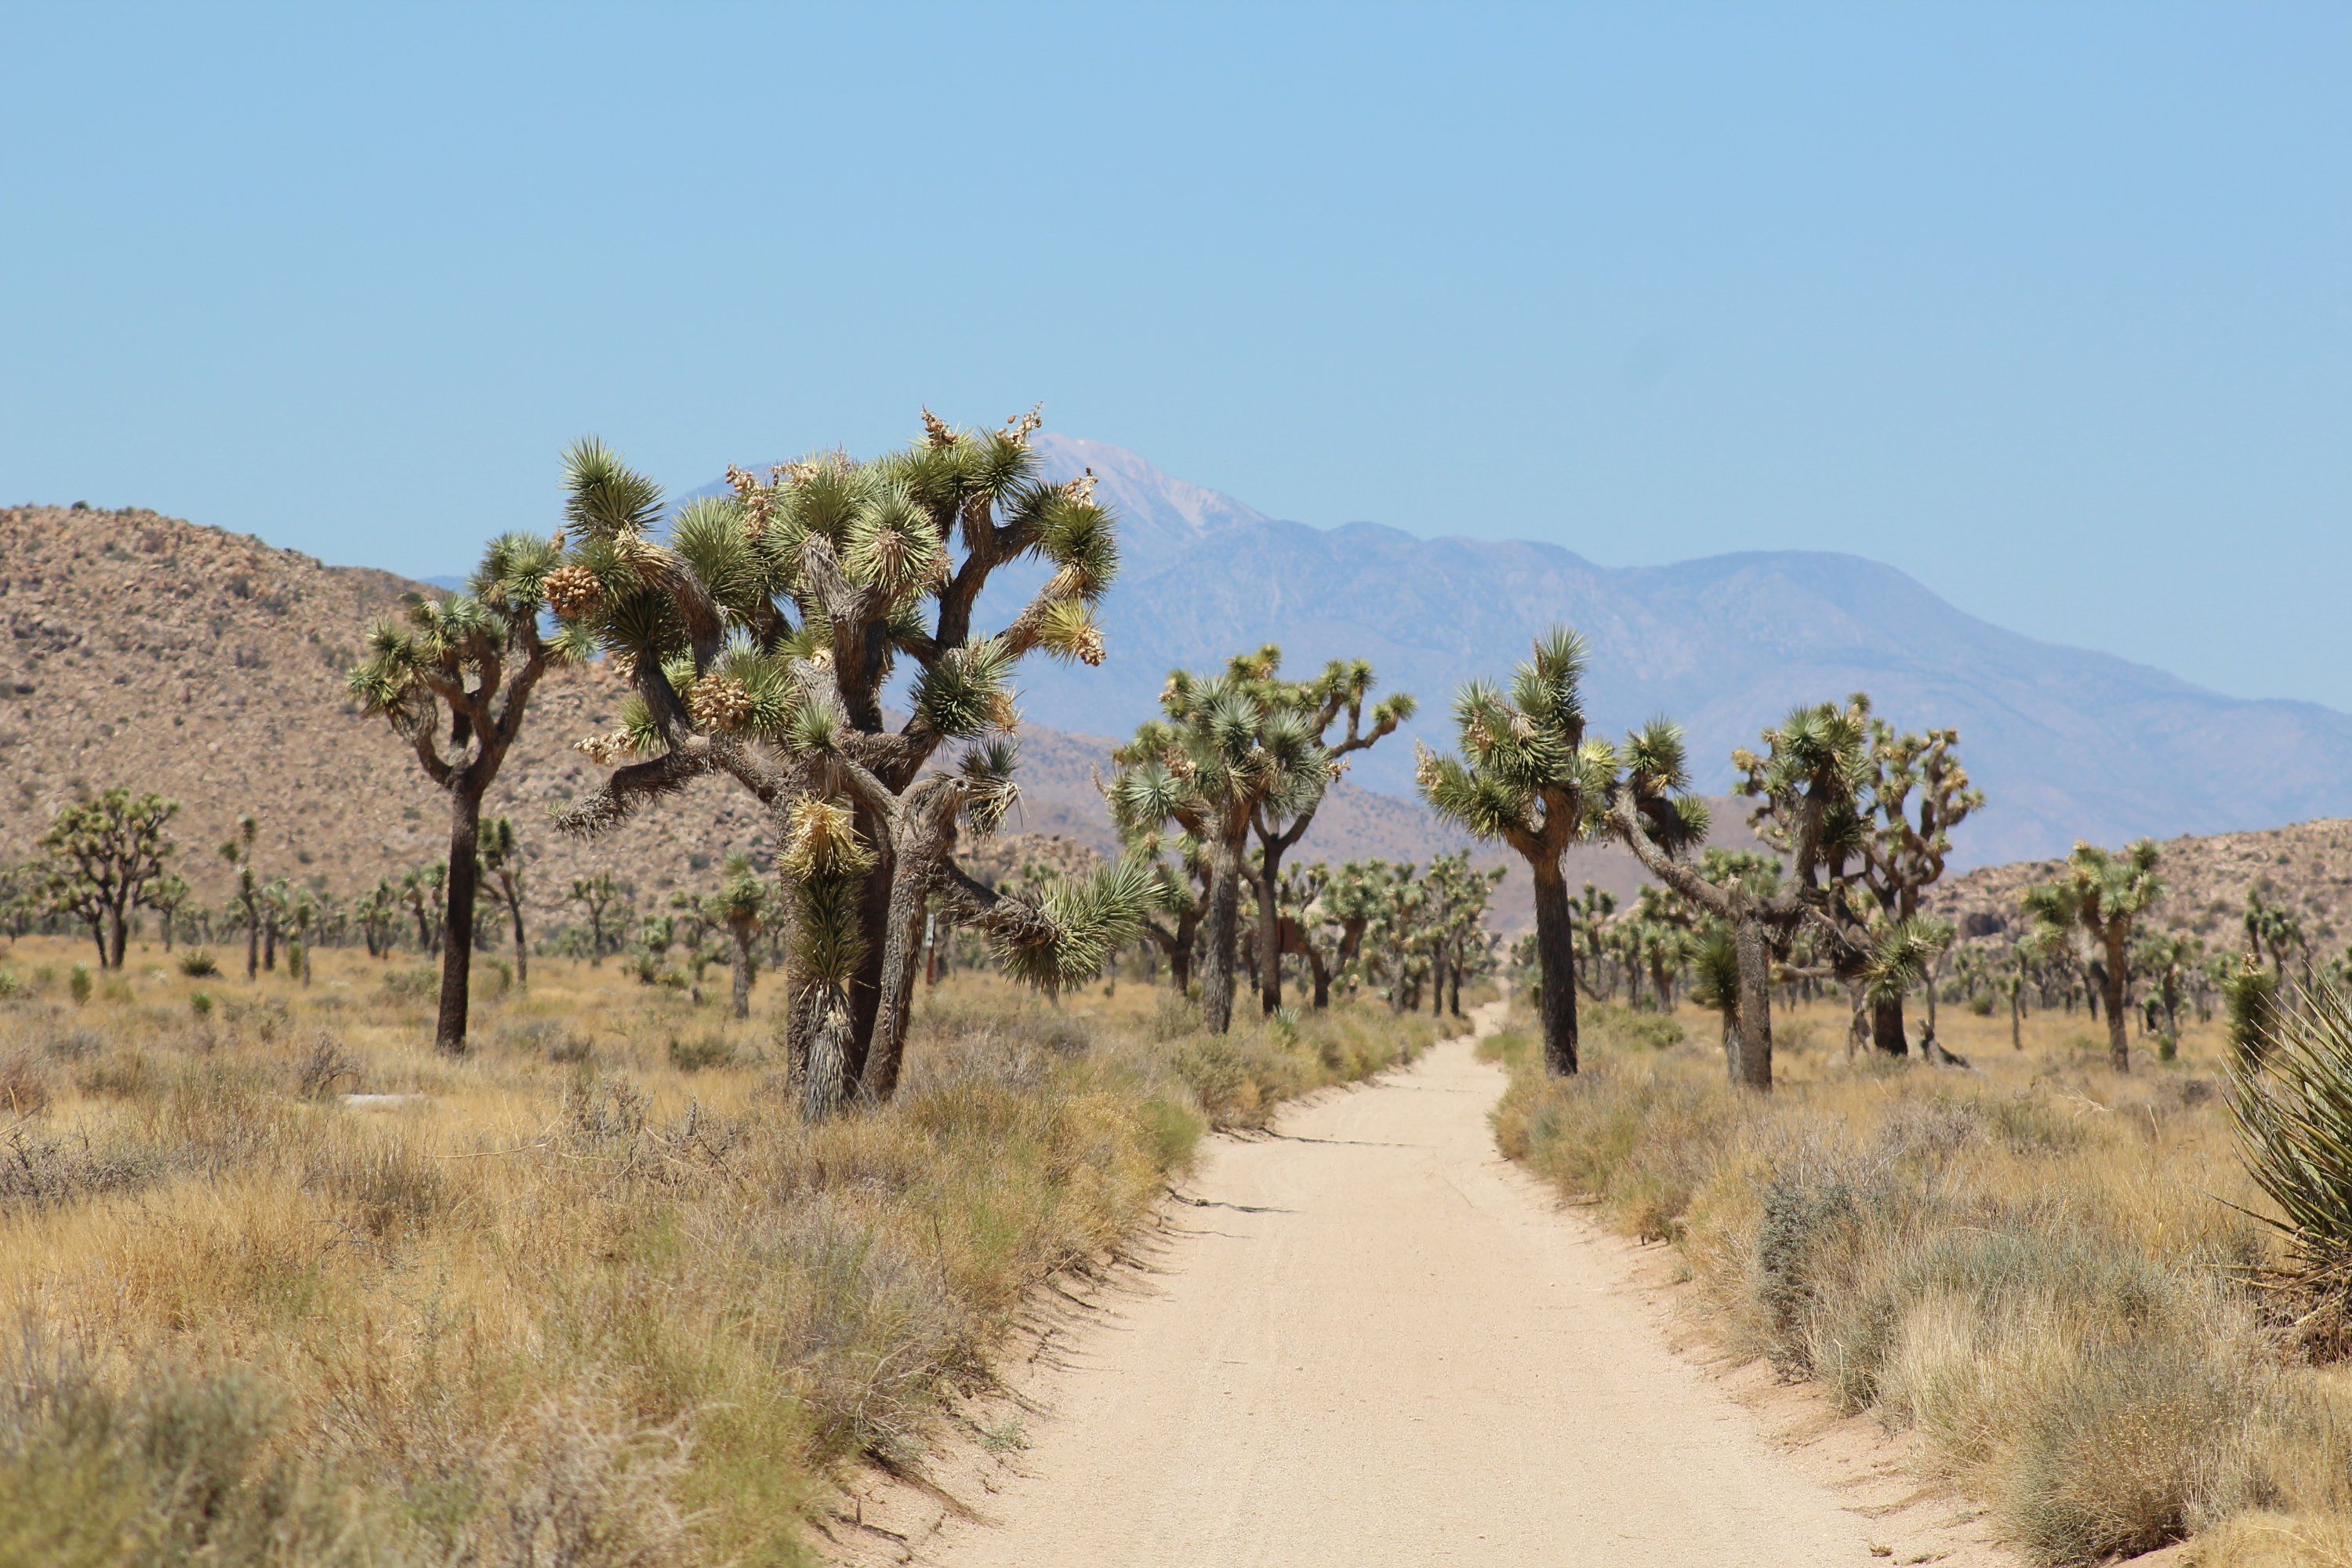 Joshua Trees along Queen Valley Road